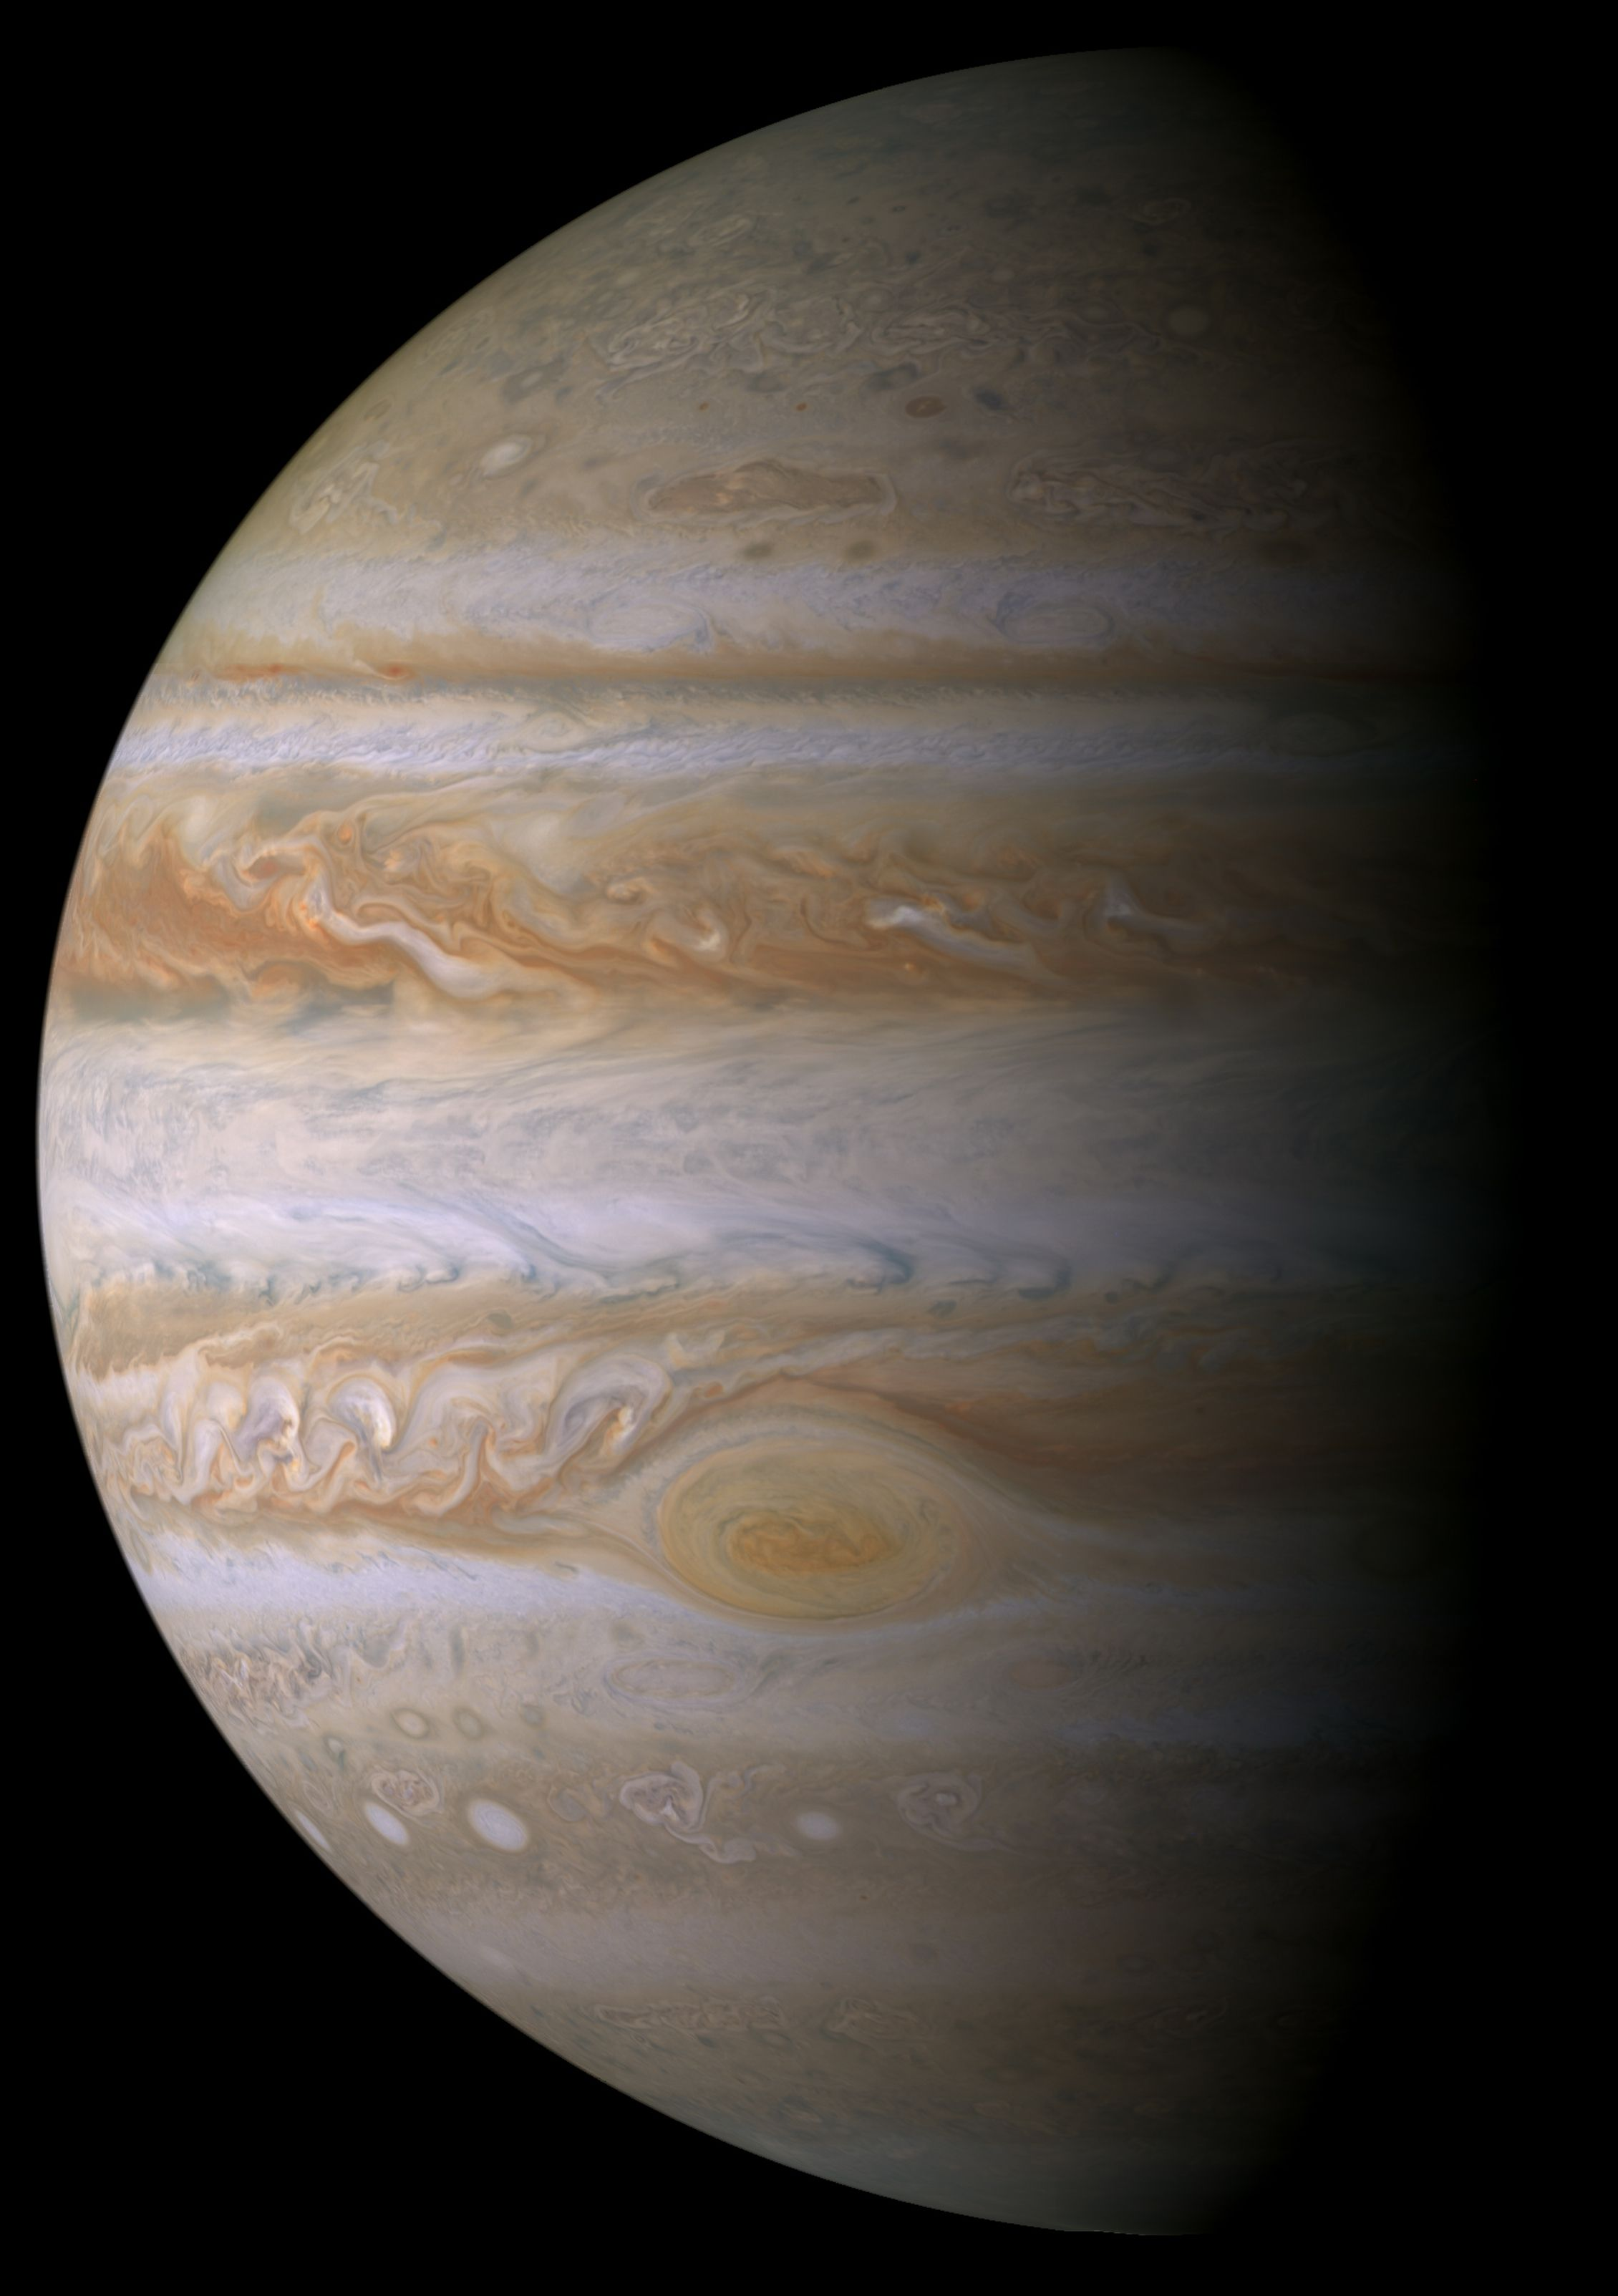 2260x3207 File:Portrait of Jupiter from Cassini.jpg - Wikipedia